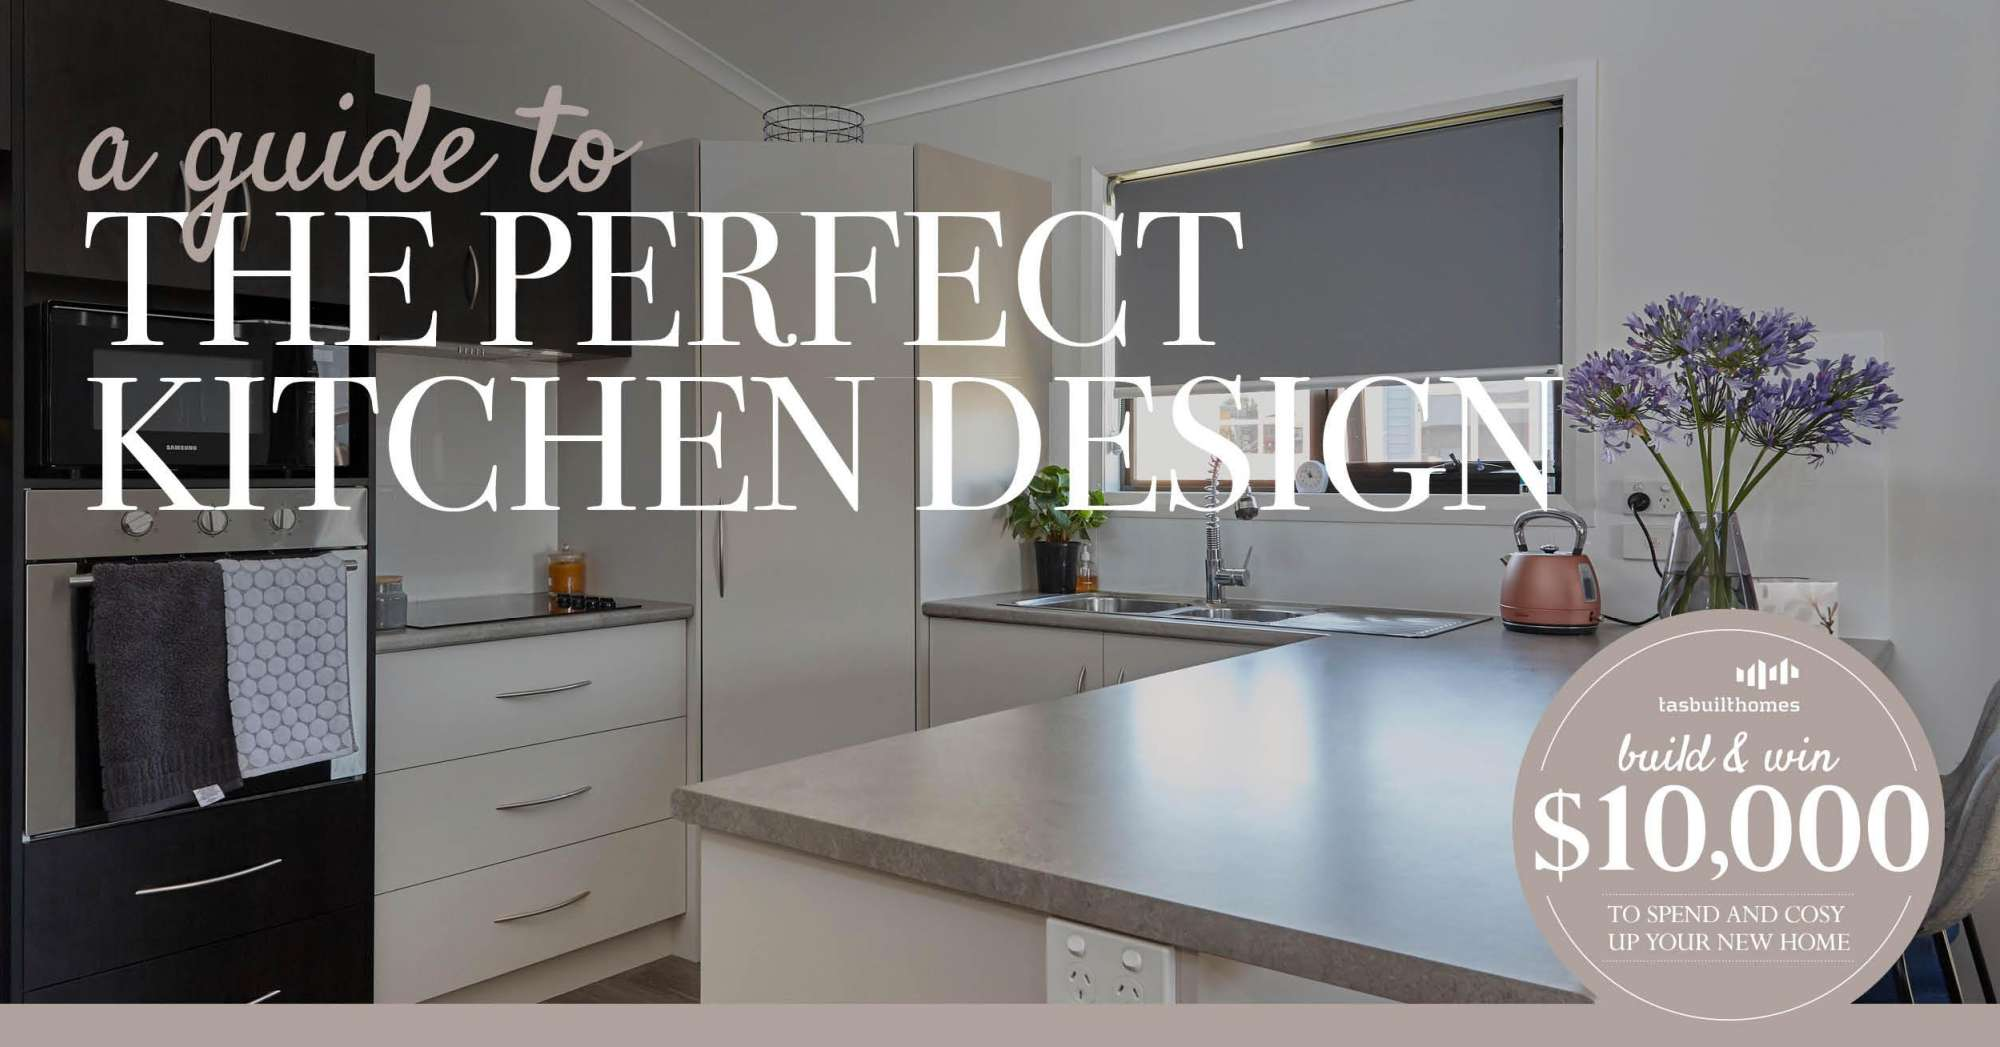 A guide to kitchen design